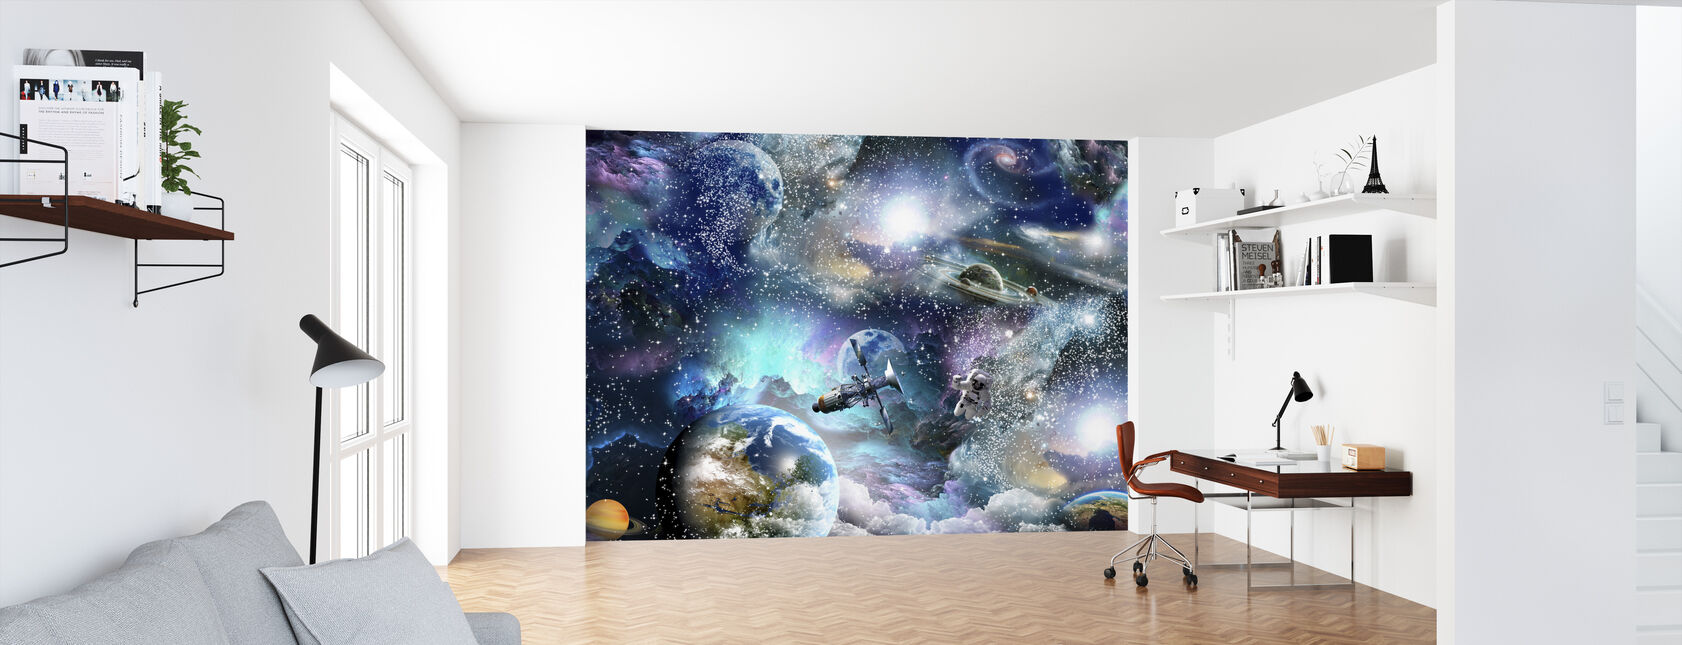 Space Essay - Wallpaper - Office